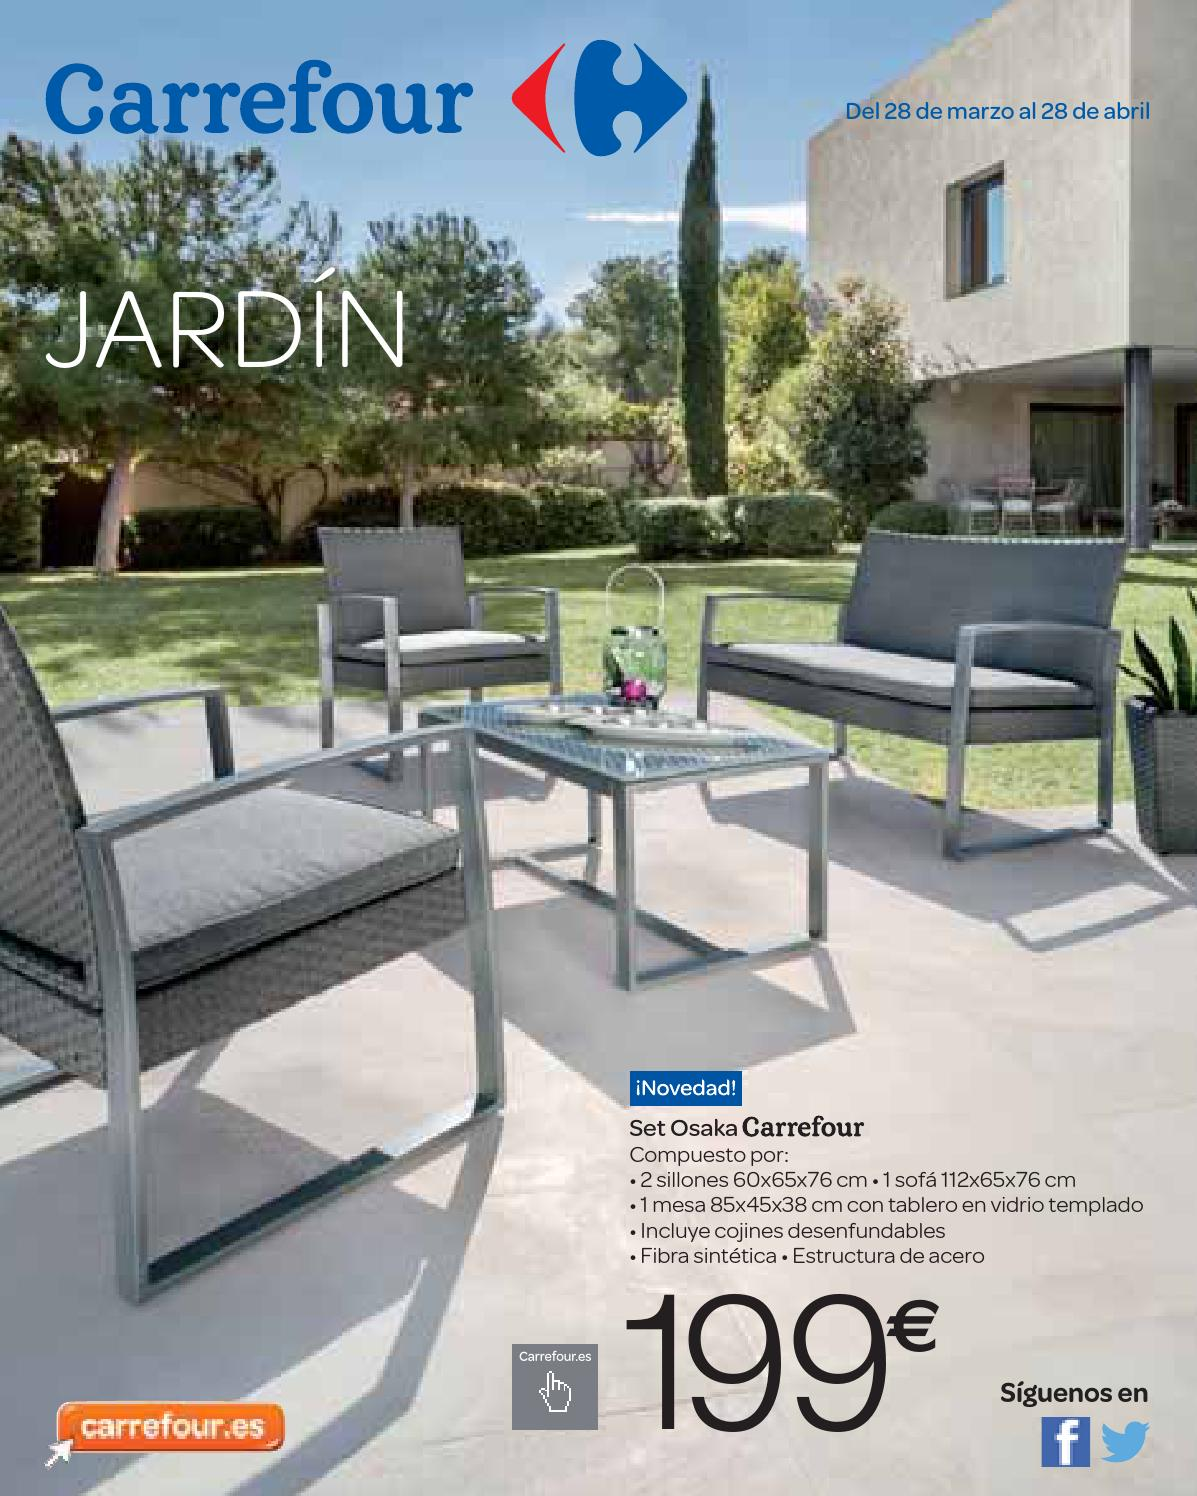 Carrefour jard n by andr gon alves issuu for Mobiliario de jardin ofertas